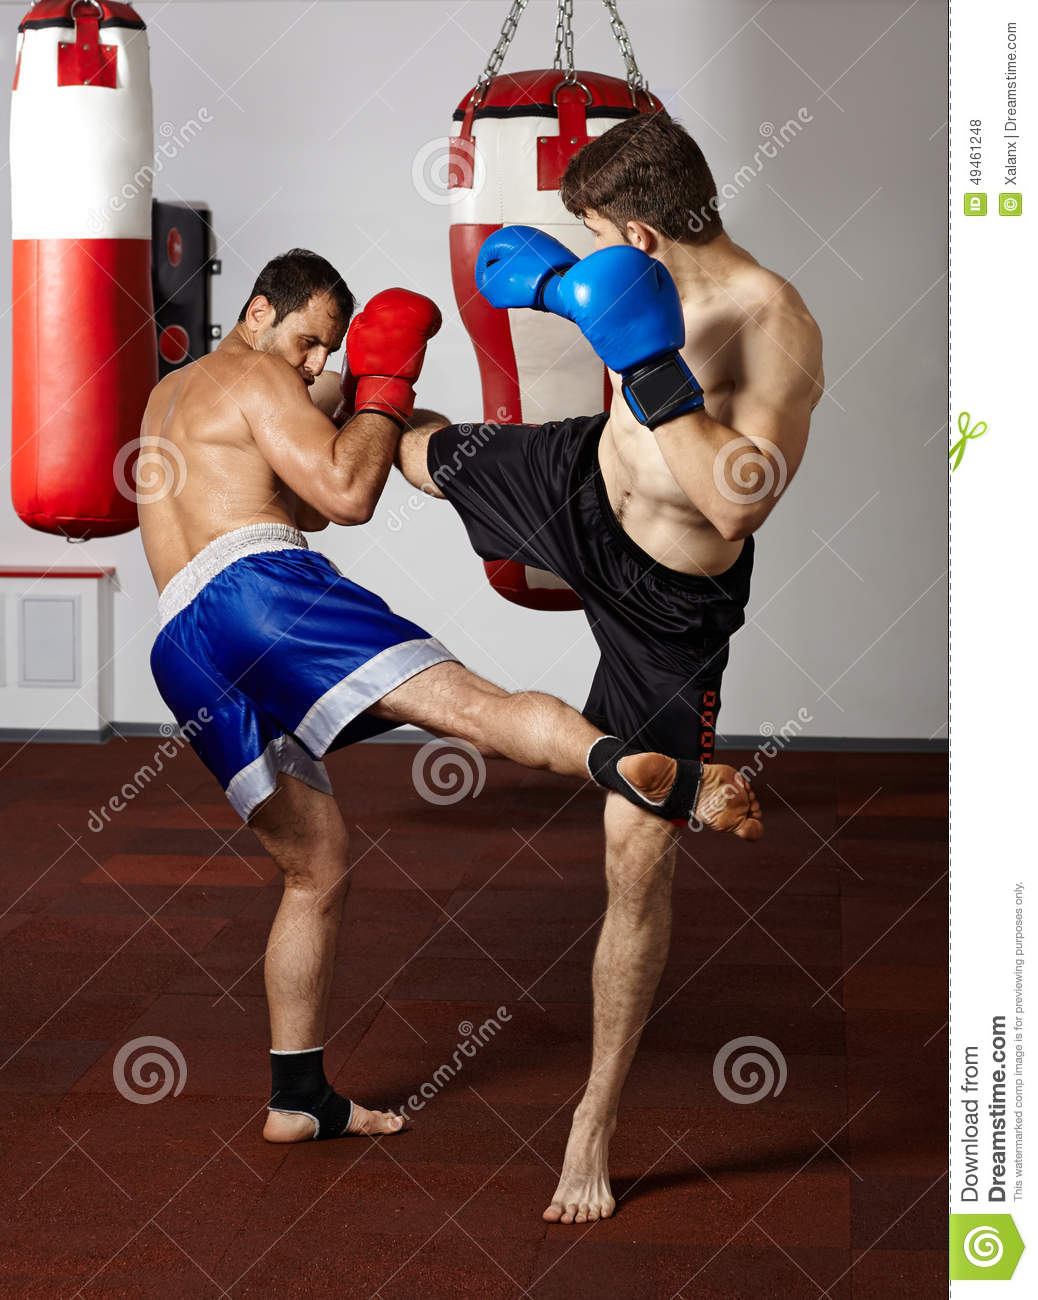 Kickbox fighters sparring in the gym